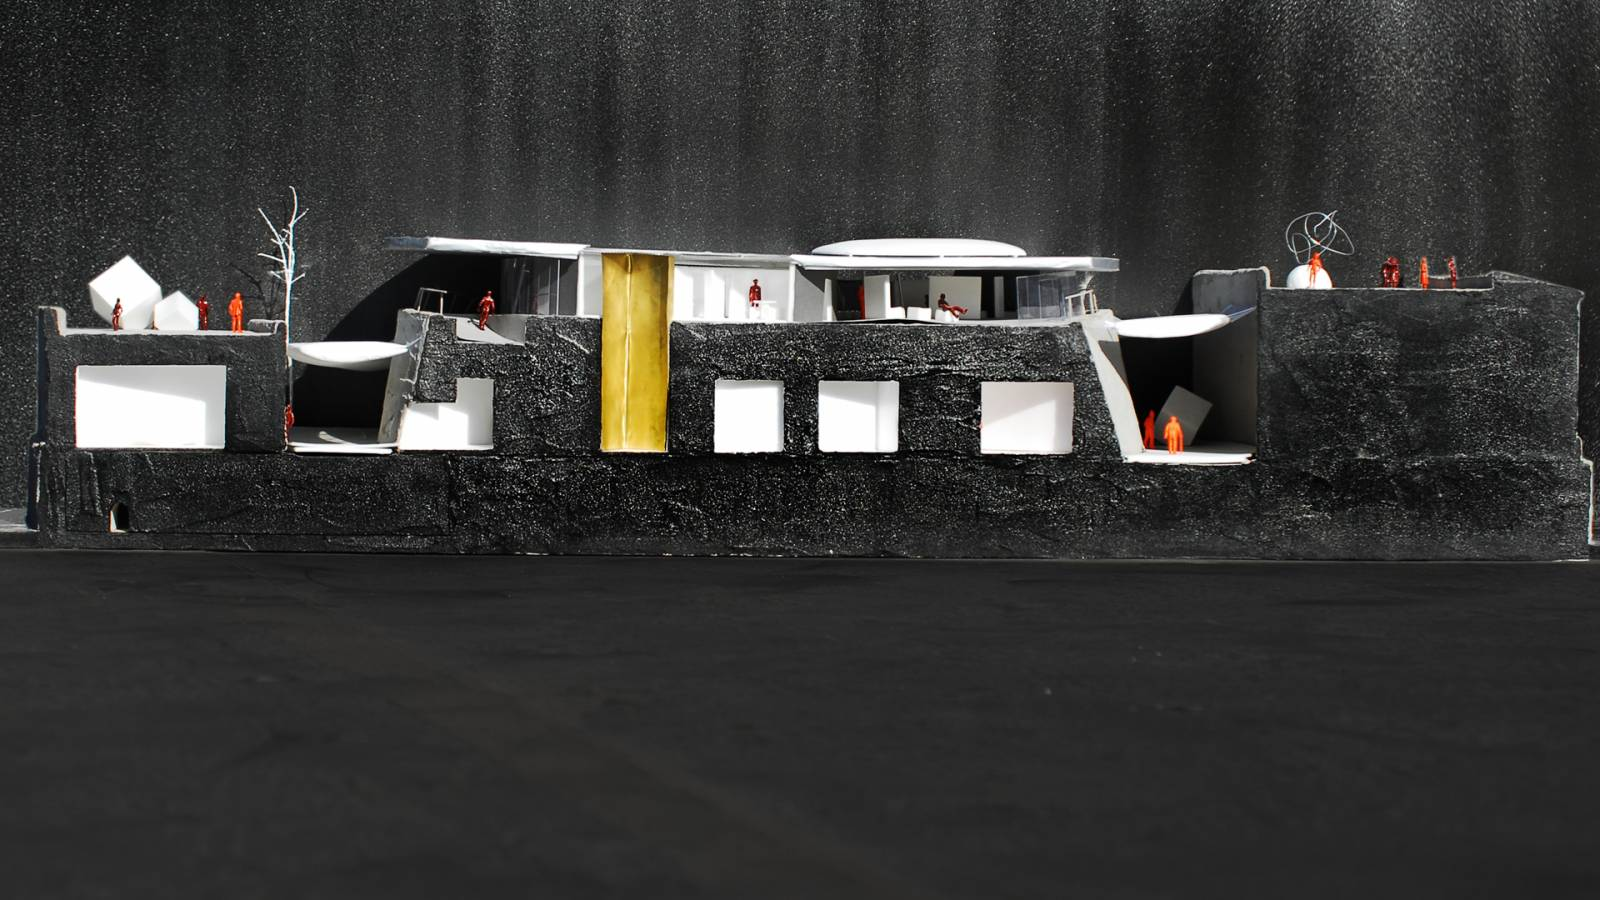 1:50 SECTION MODEL - Forte São Marcelo - SPOL Architects